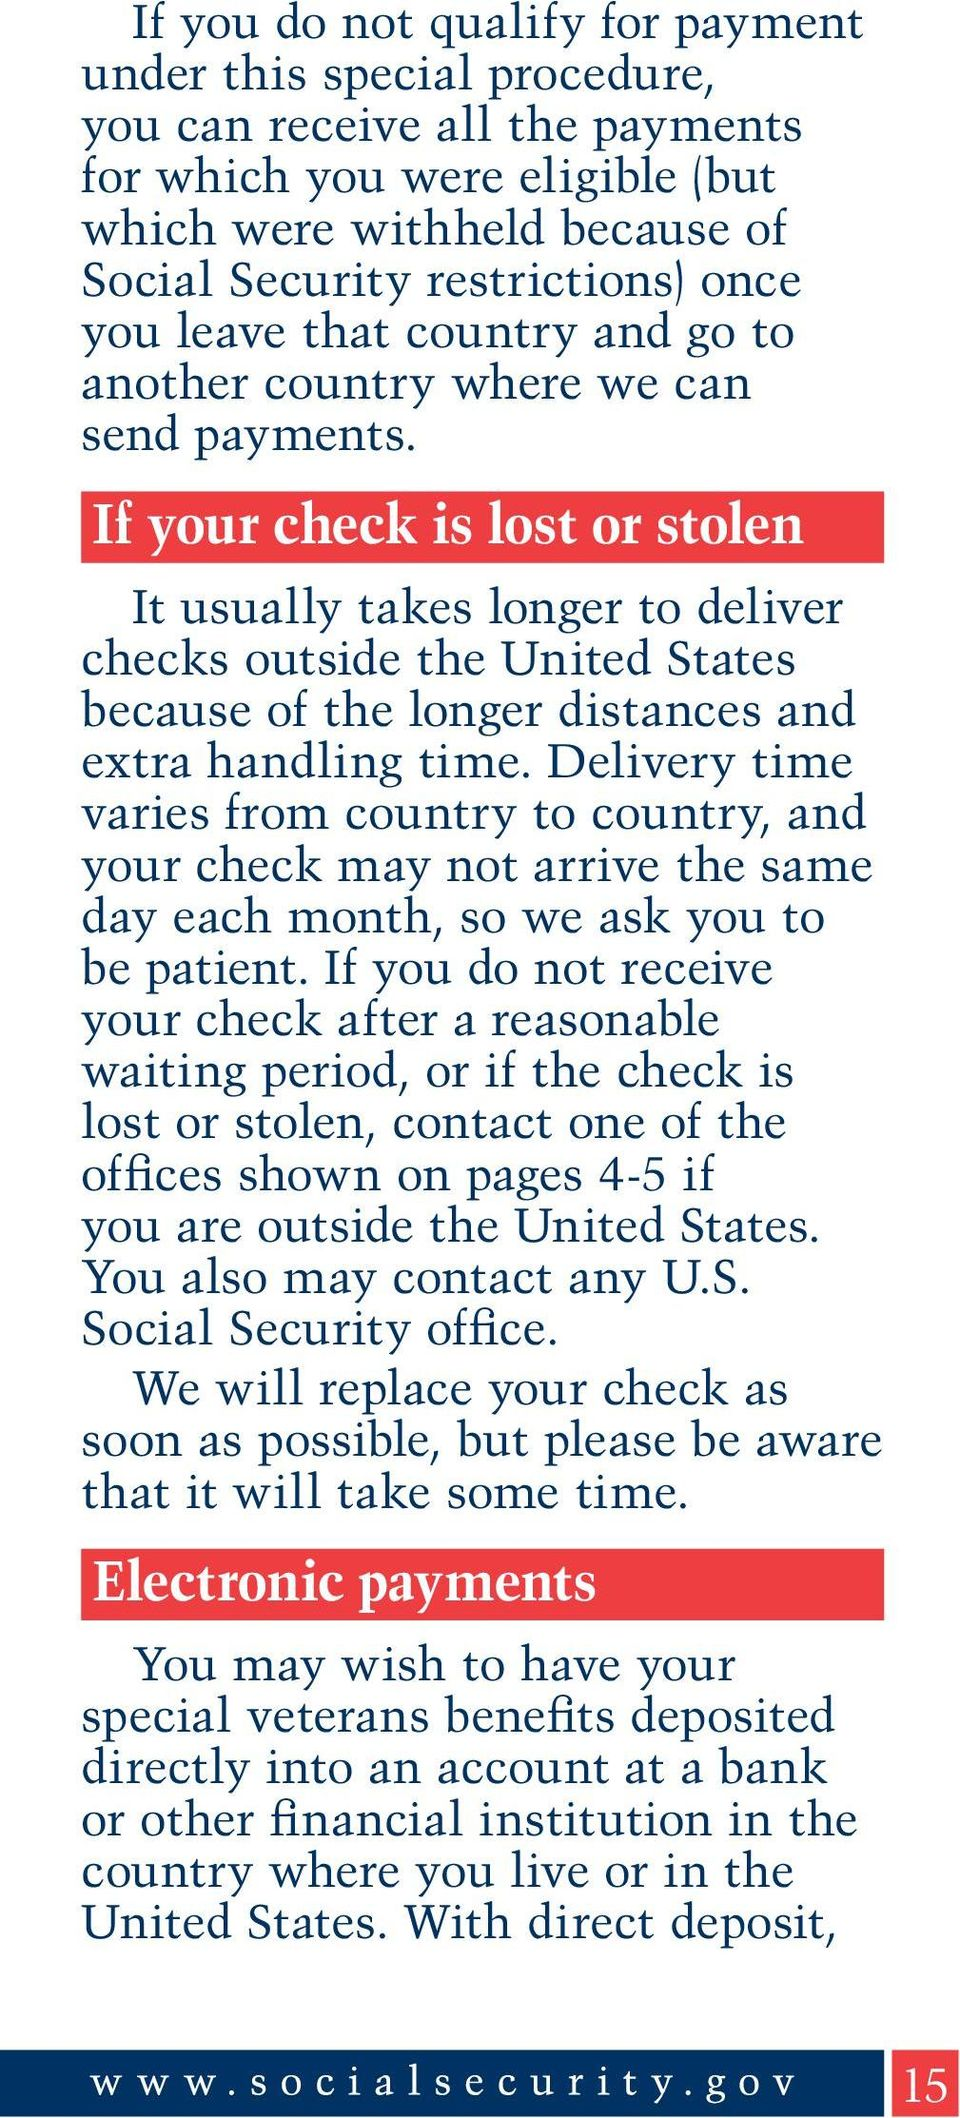 If your check is lost or stolen It usually takes longer to deliver checks outside the United States because of the longer distances and extra handling time.